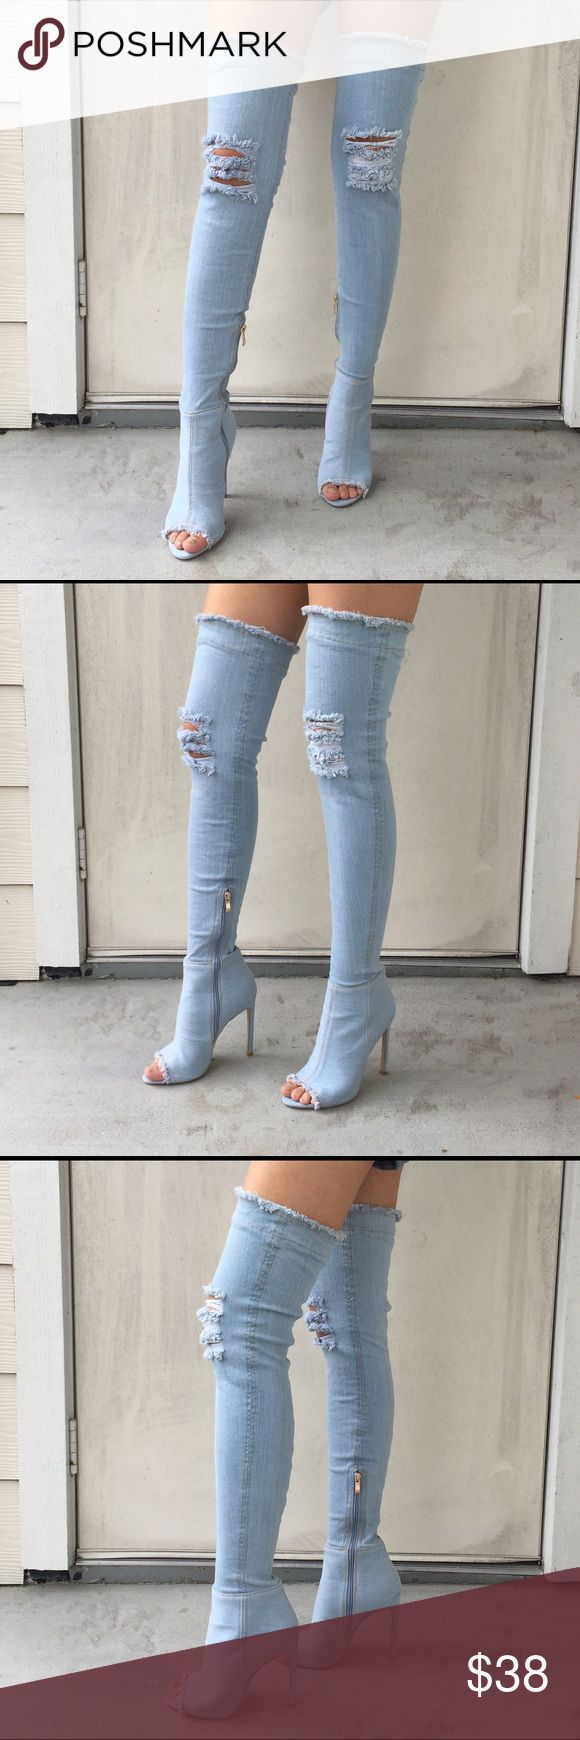 Denim Thigh High Boots Denim Thigh High Boots by UK brand MissPap. Size US 7, UK 5. Worn once for styling purposes. In a great condition. I've added a photo styling them with a gray hoodie. Great whether dressing it up or down! MissPap Shoes Over the Knee Boots